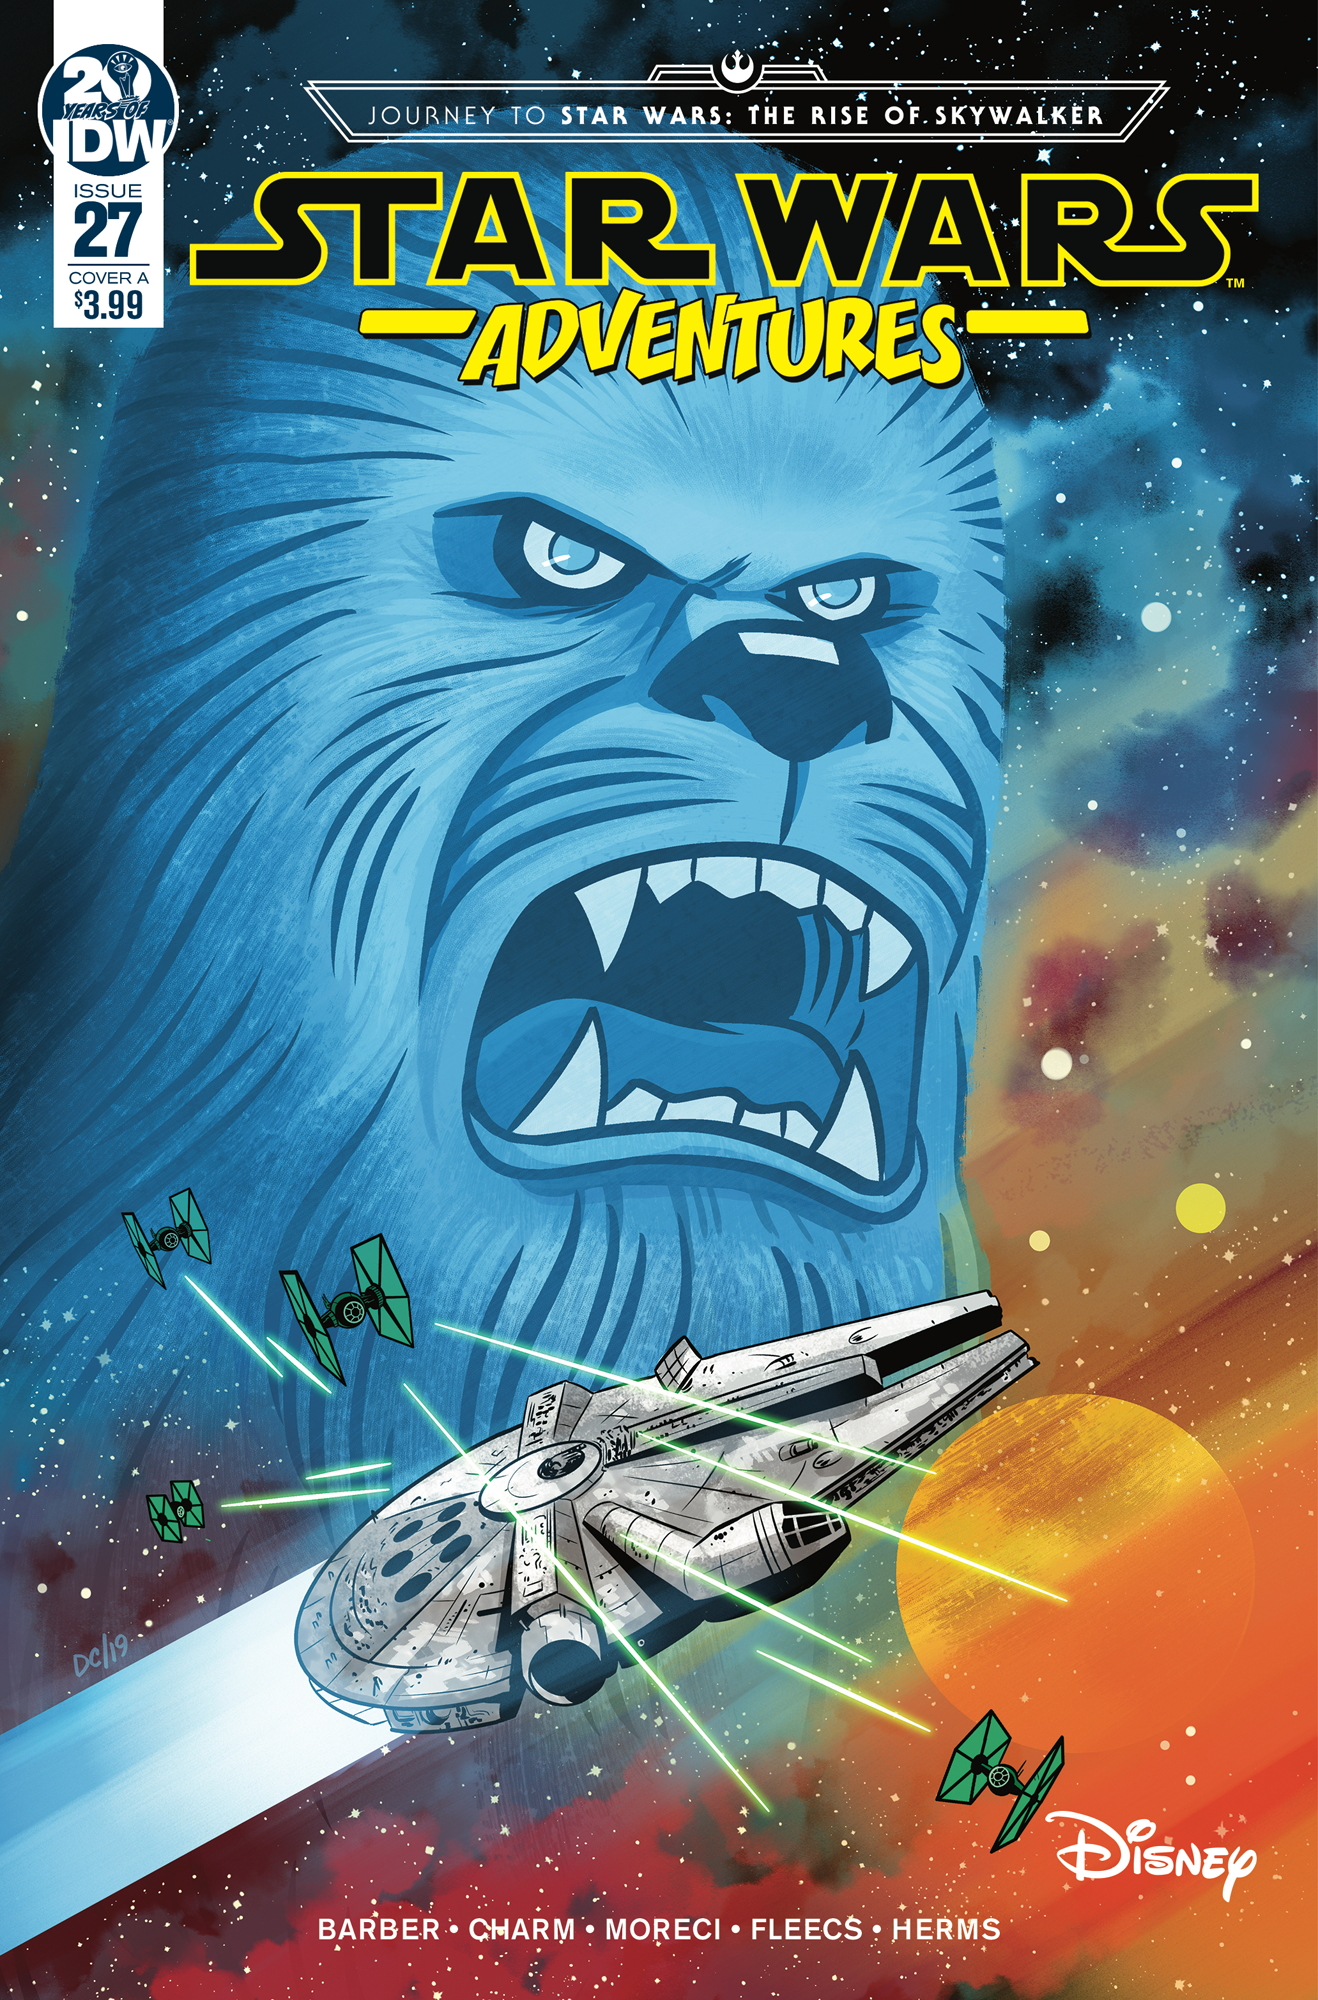 Star Wars Adventures #27 (Cover A by Derek Charm) (23.10.2019)